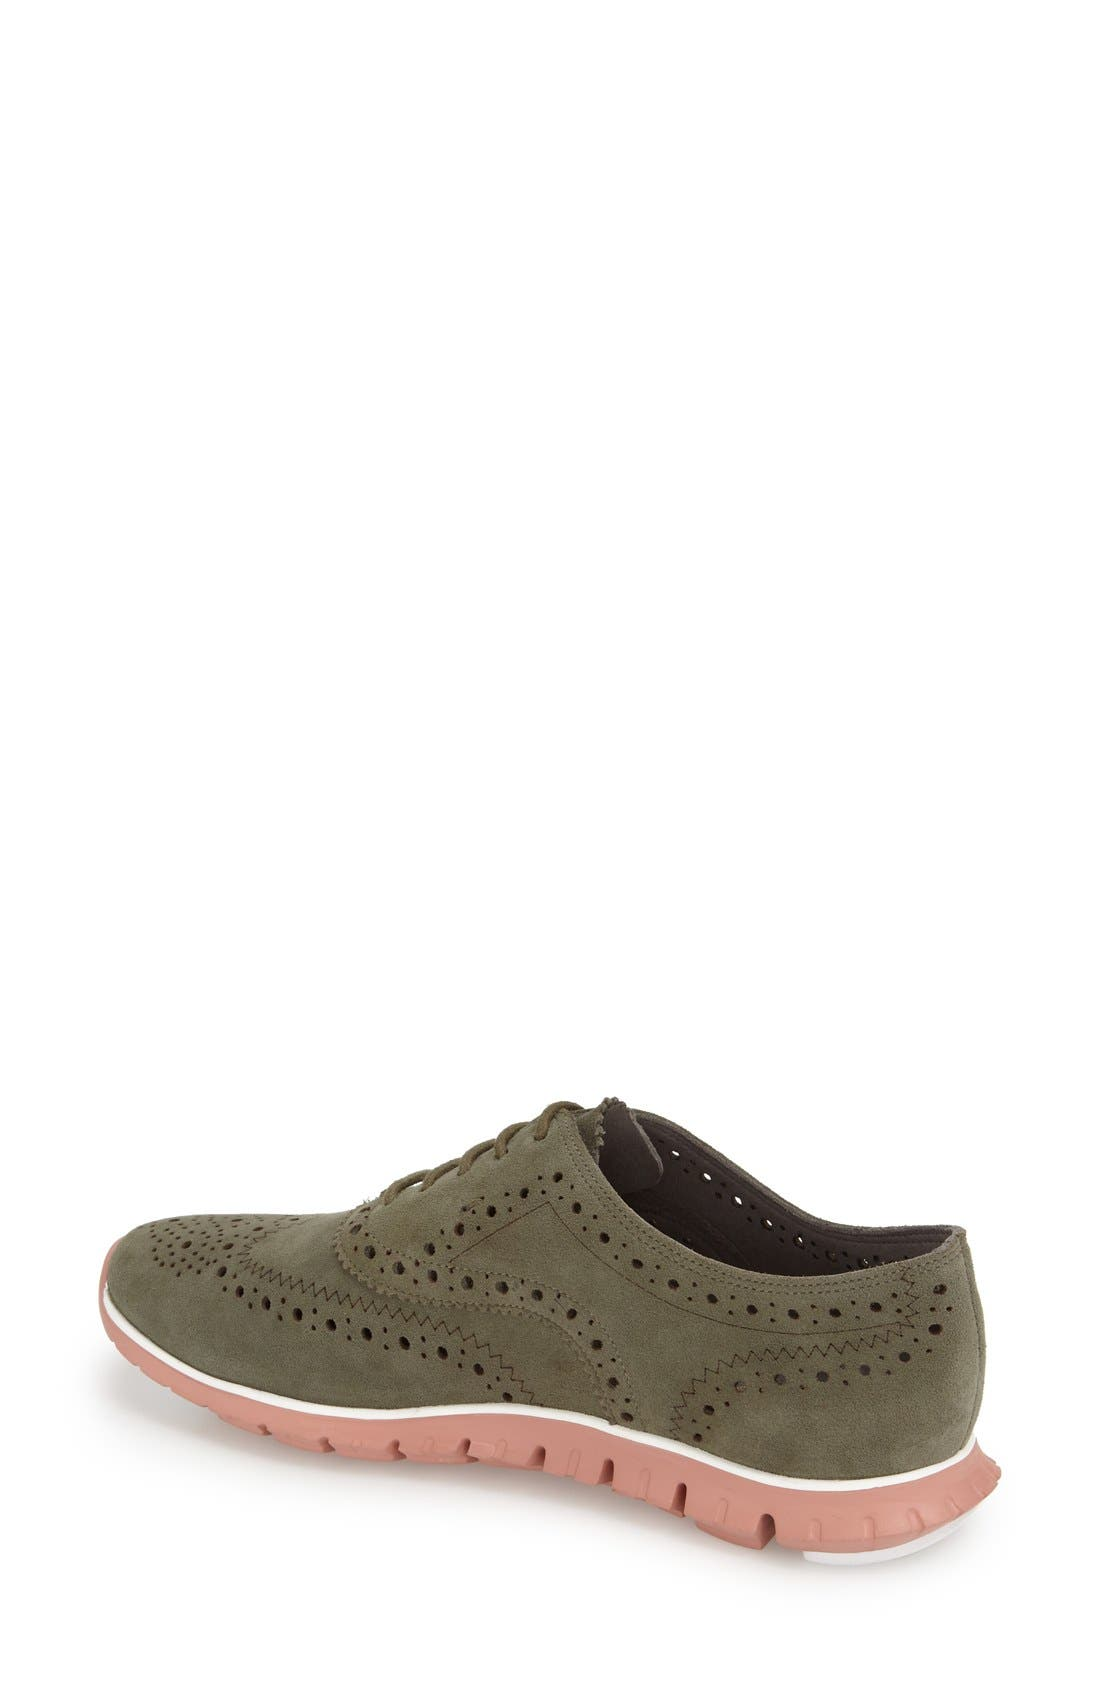 'ZeroGrand' Perforated Wingtip,                             Alternate thumbnail 75, color,